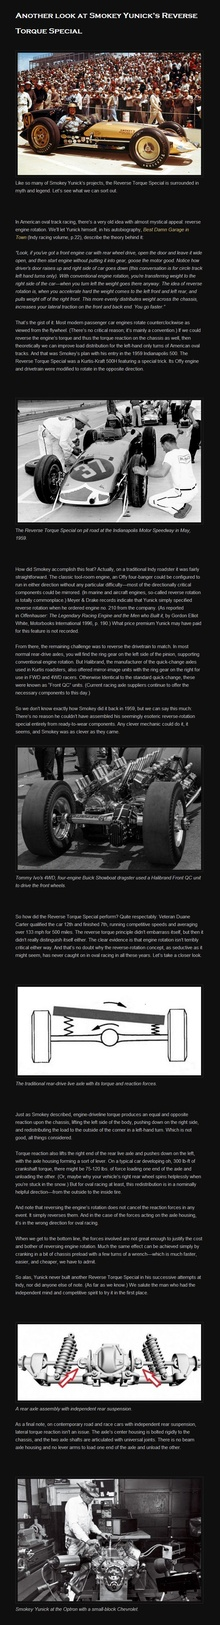 Like so many of Smokey Yunick's projects, the Reverse Torque Special is surrounded in myth ...